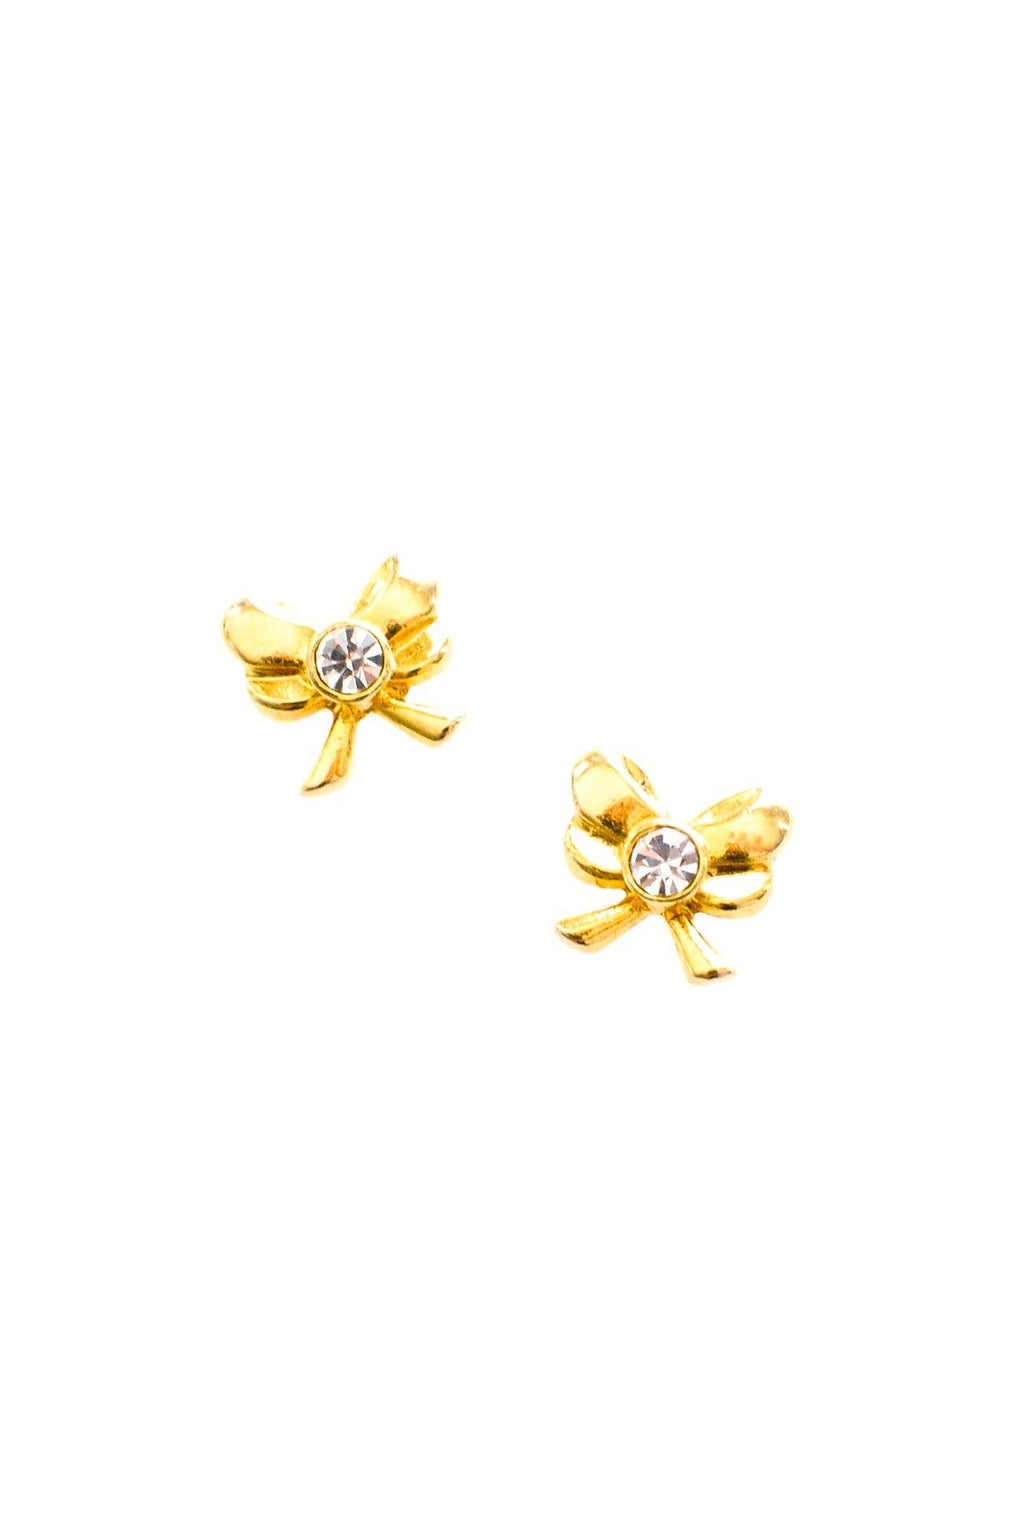 Mini Rhinestone Bow Pierced Earrings